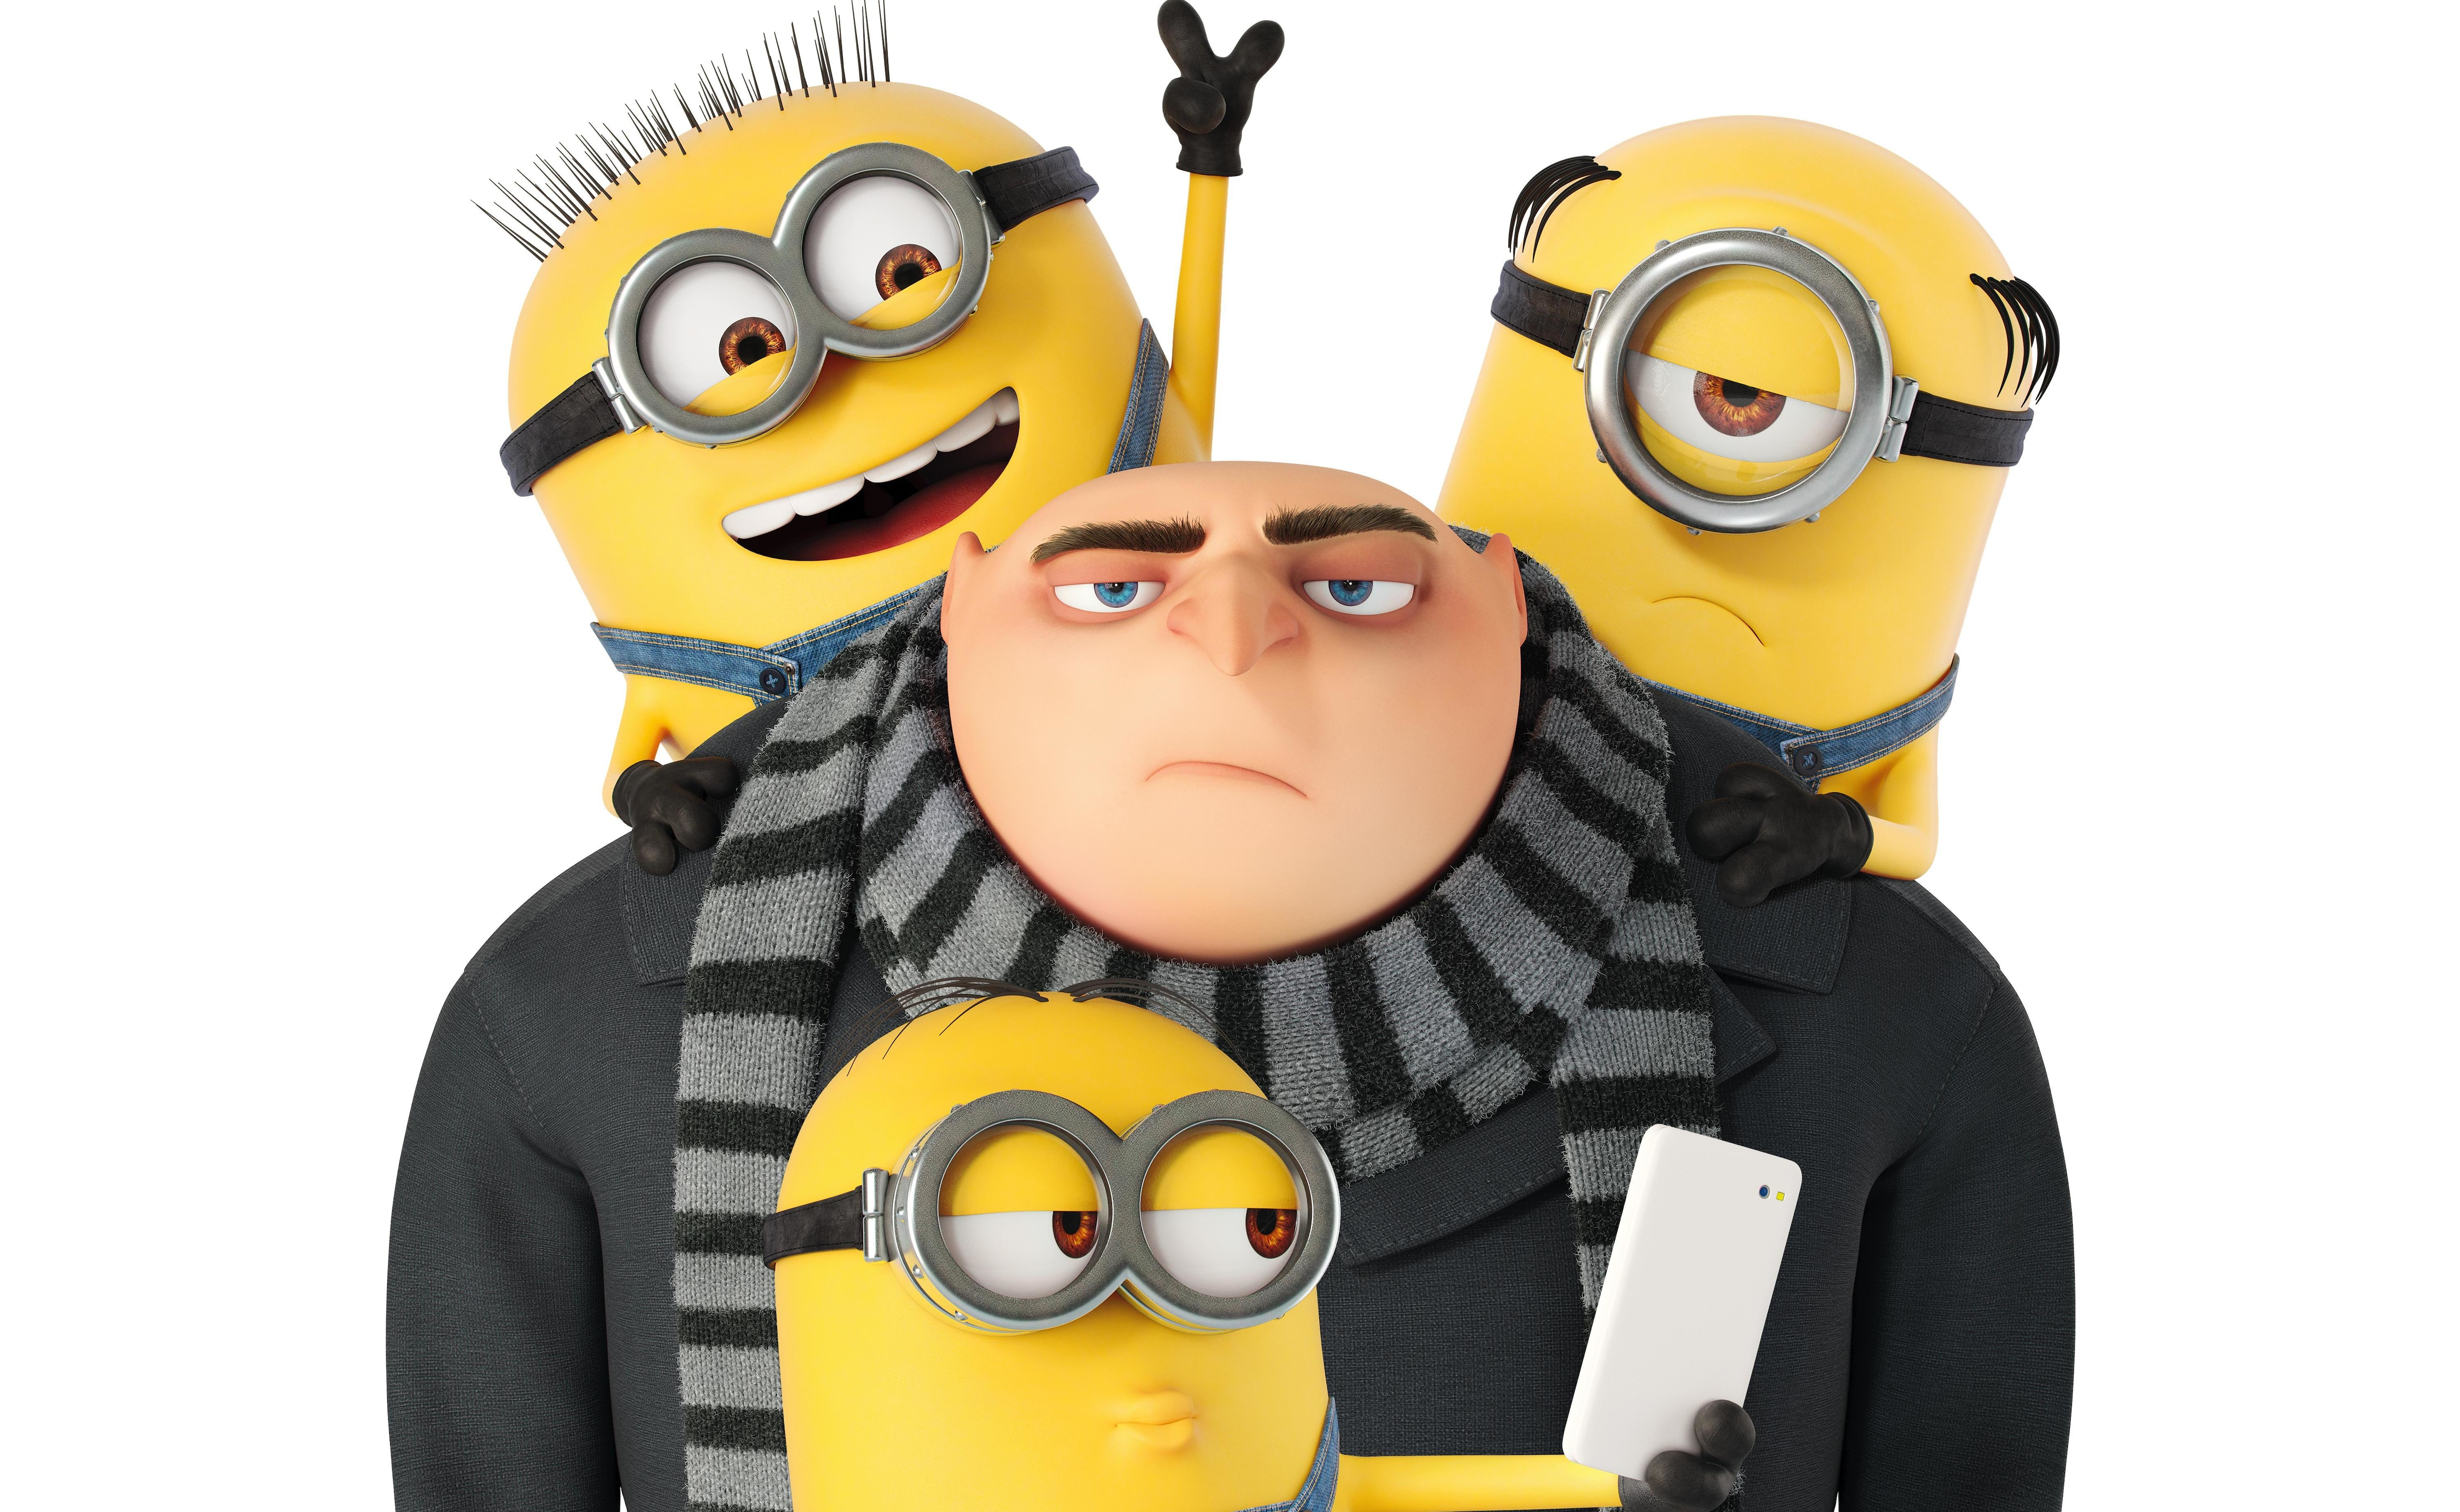 minions 2048x1152 resolution wallpapers 2048x1152 resolution